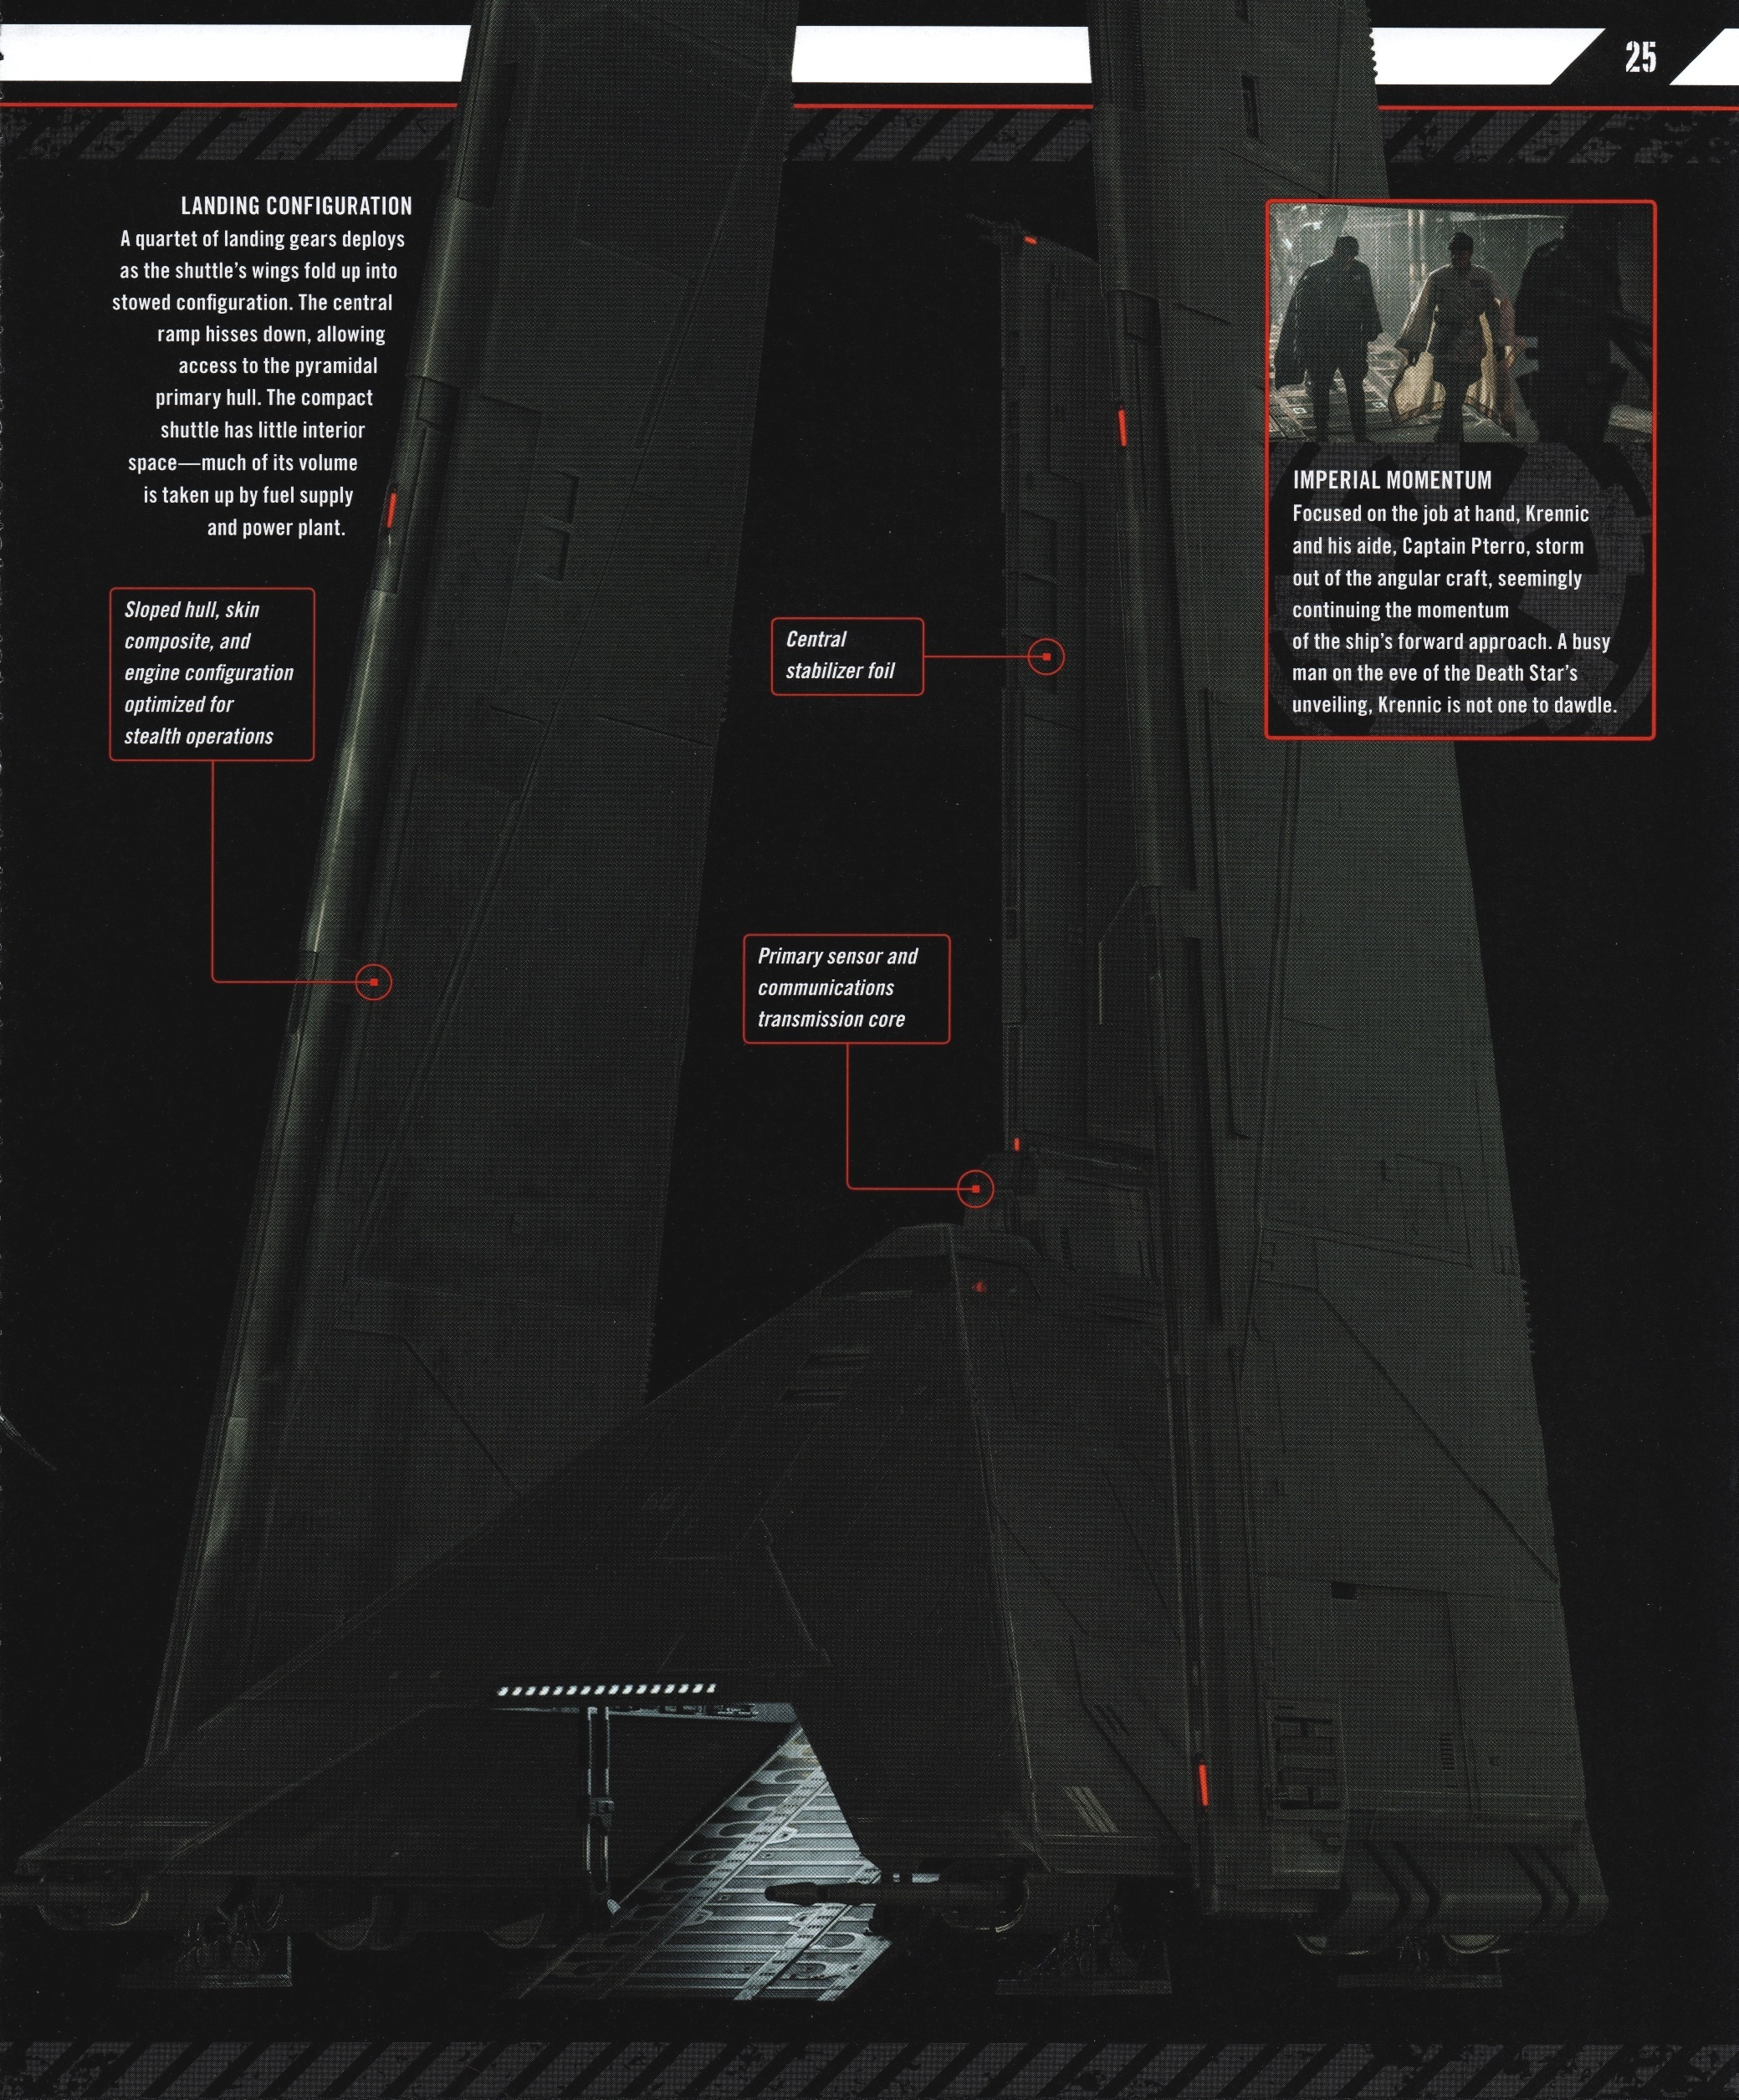 Rogue One Ultimate Visual Guide (b0bafett_Empire) p025